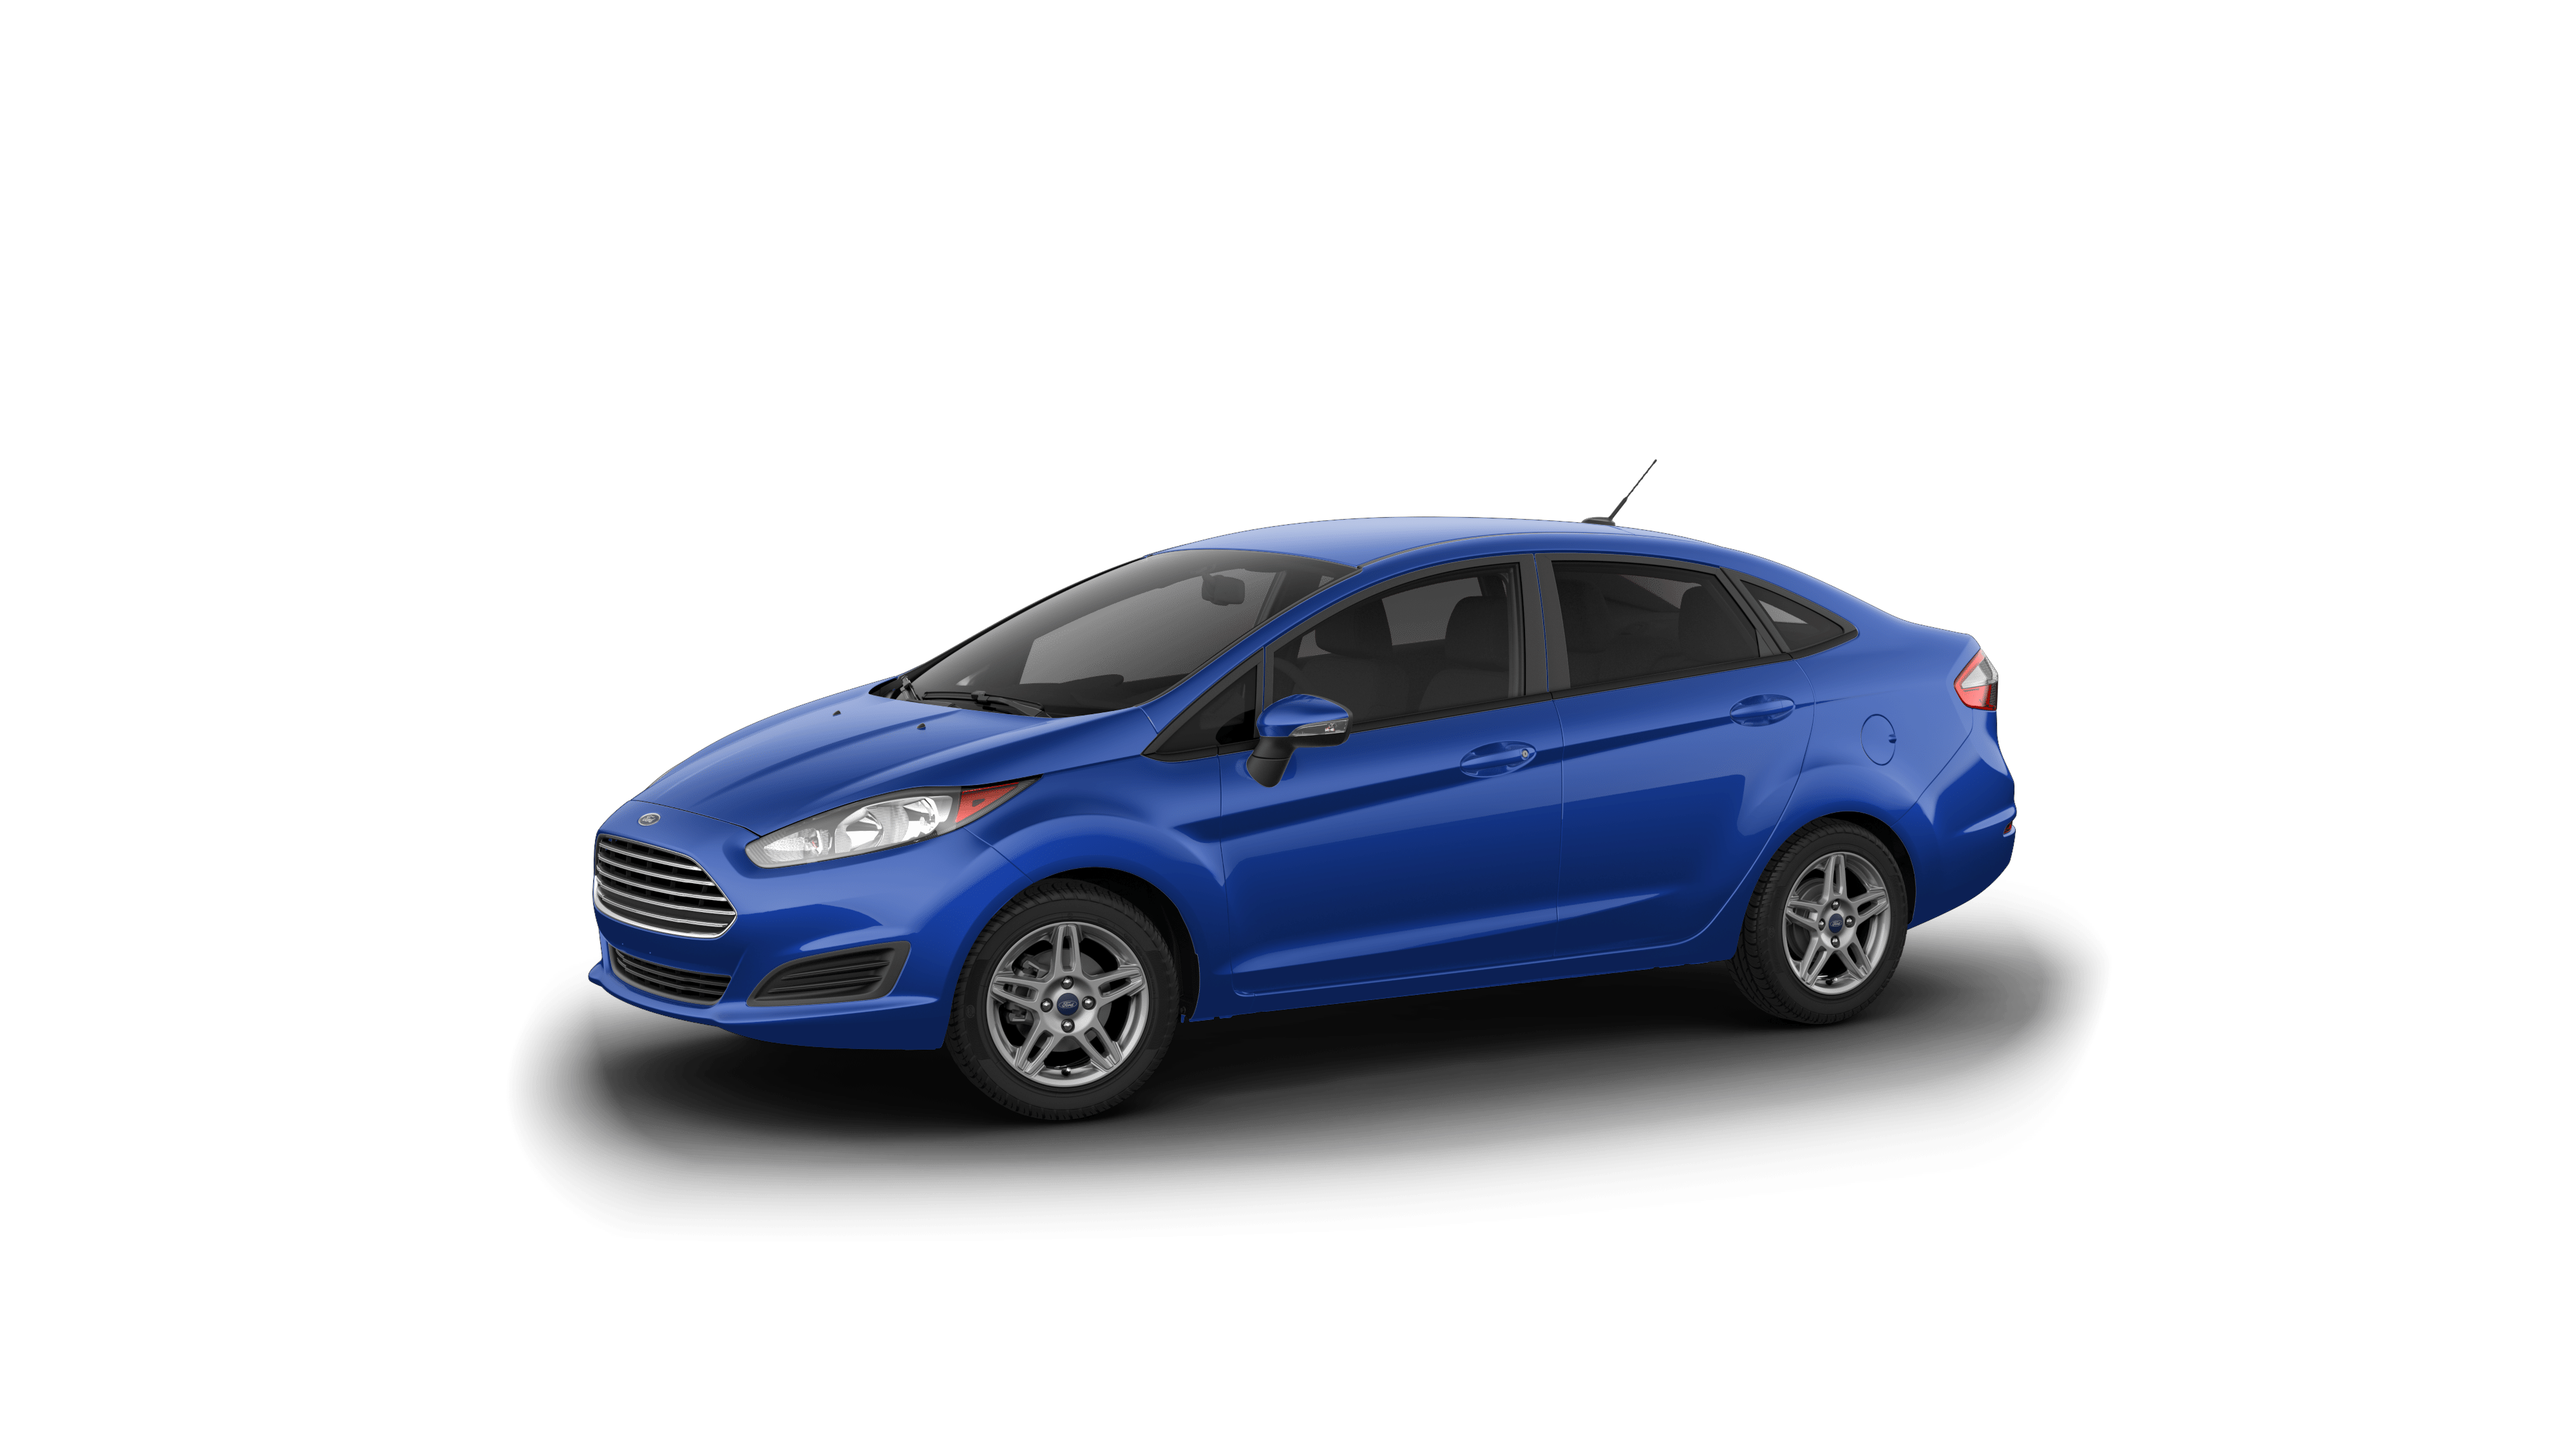 2019 Ford Fiesta Vehicle Photo in Quakertown, PA 18951-1403